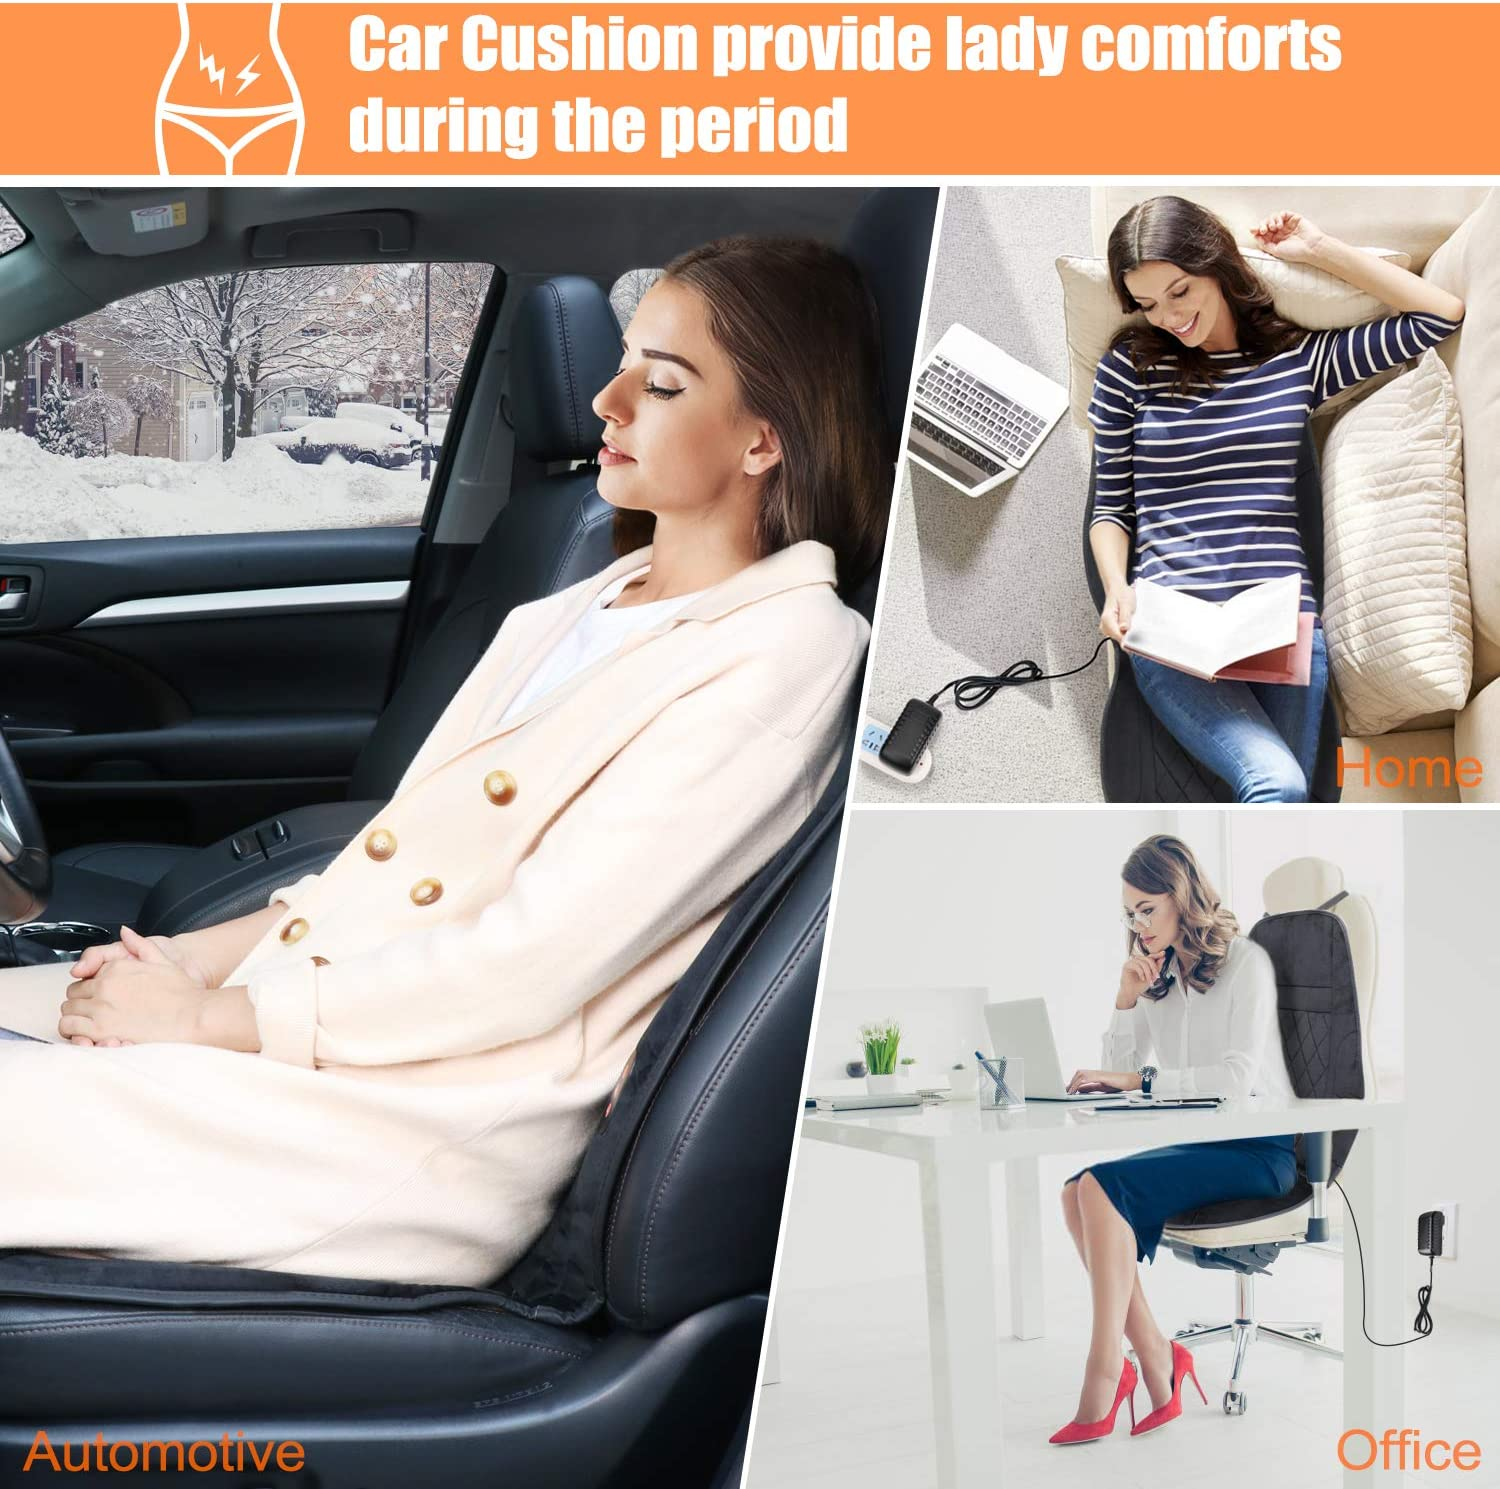 SEG Direct Heating Car Seat Cushion 12V Heater for Winter Vibrating Massage Seat Cover Heated Pad for Car Home Office